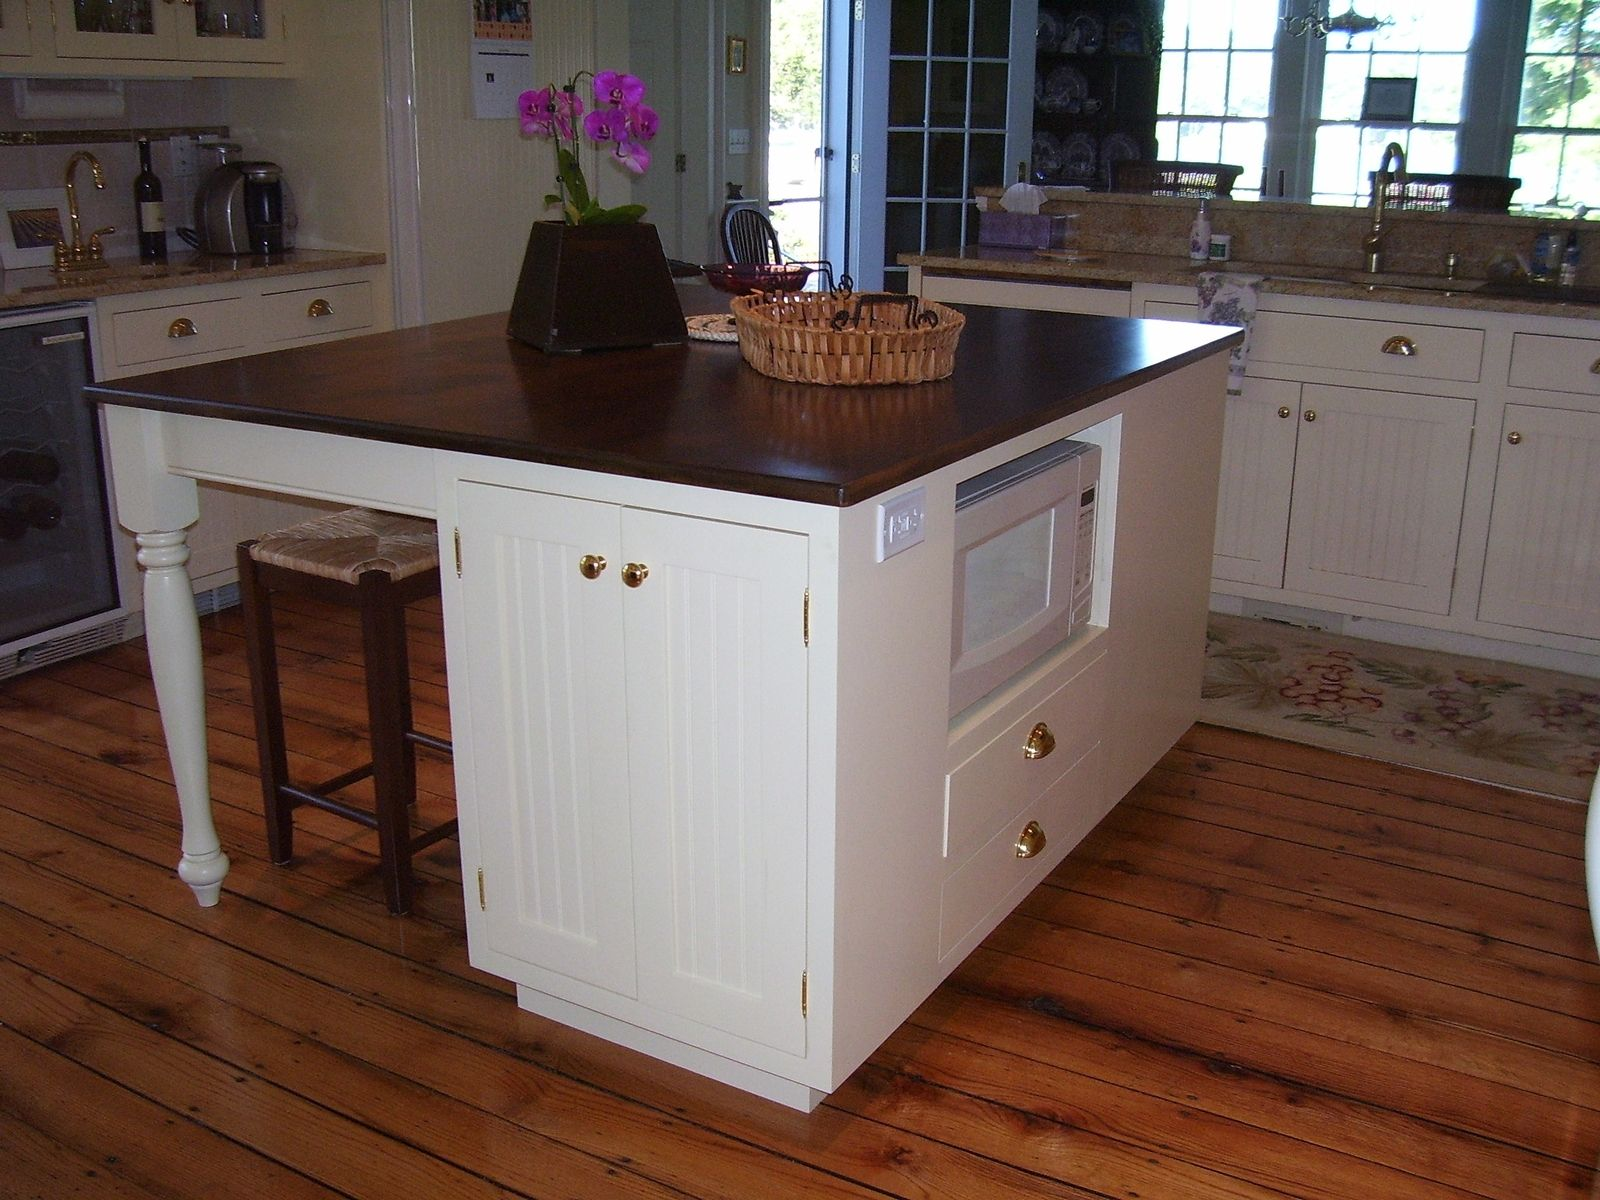 Be peculiar - purchase custom kitchen islands for sale | Modern ...